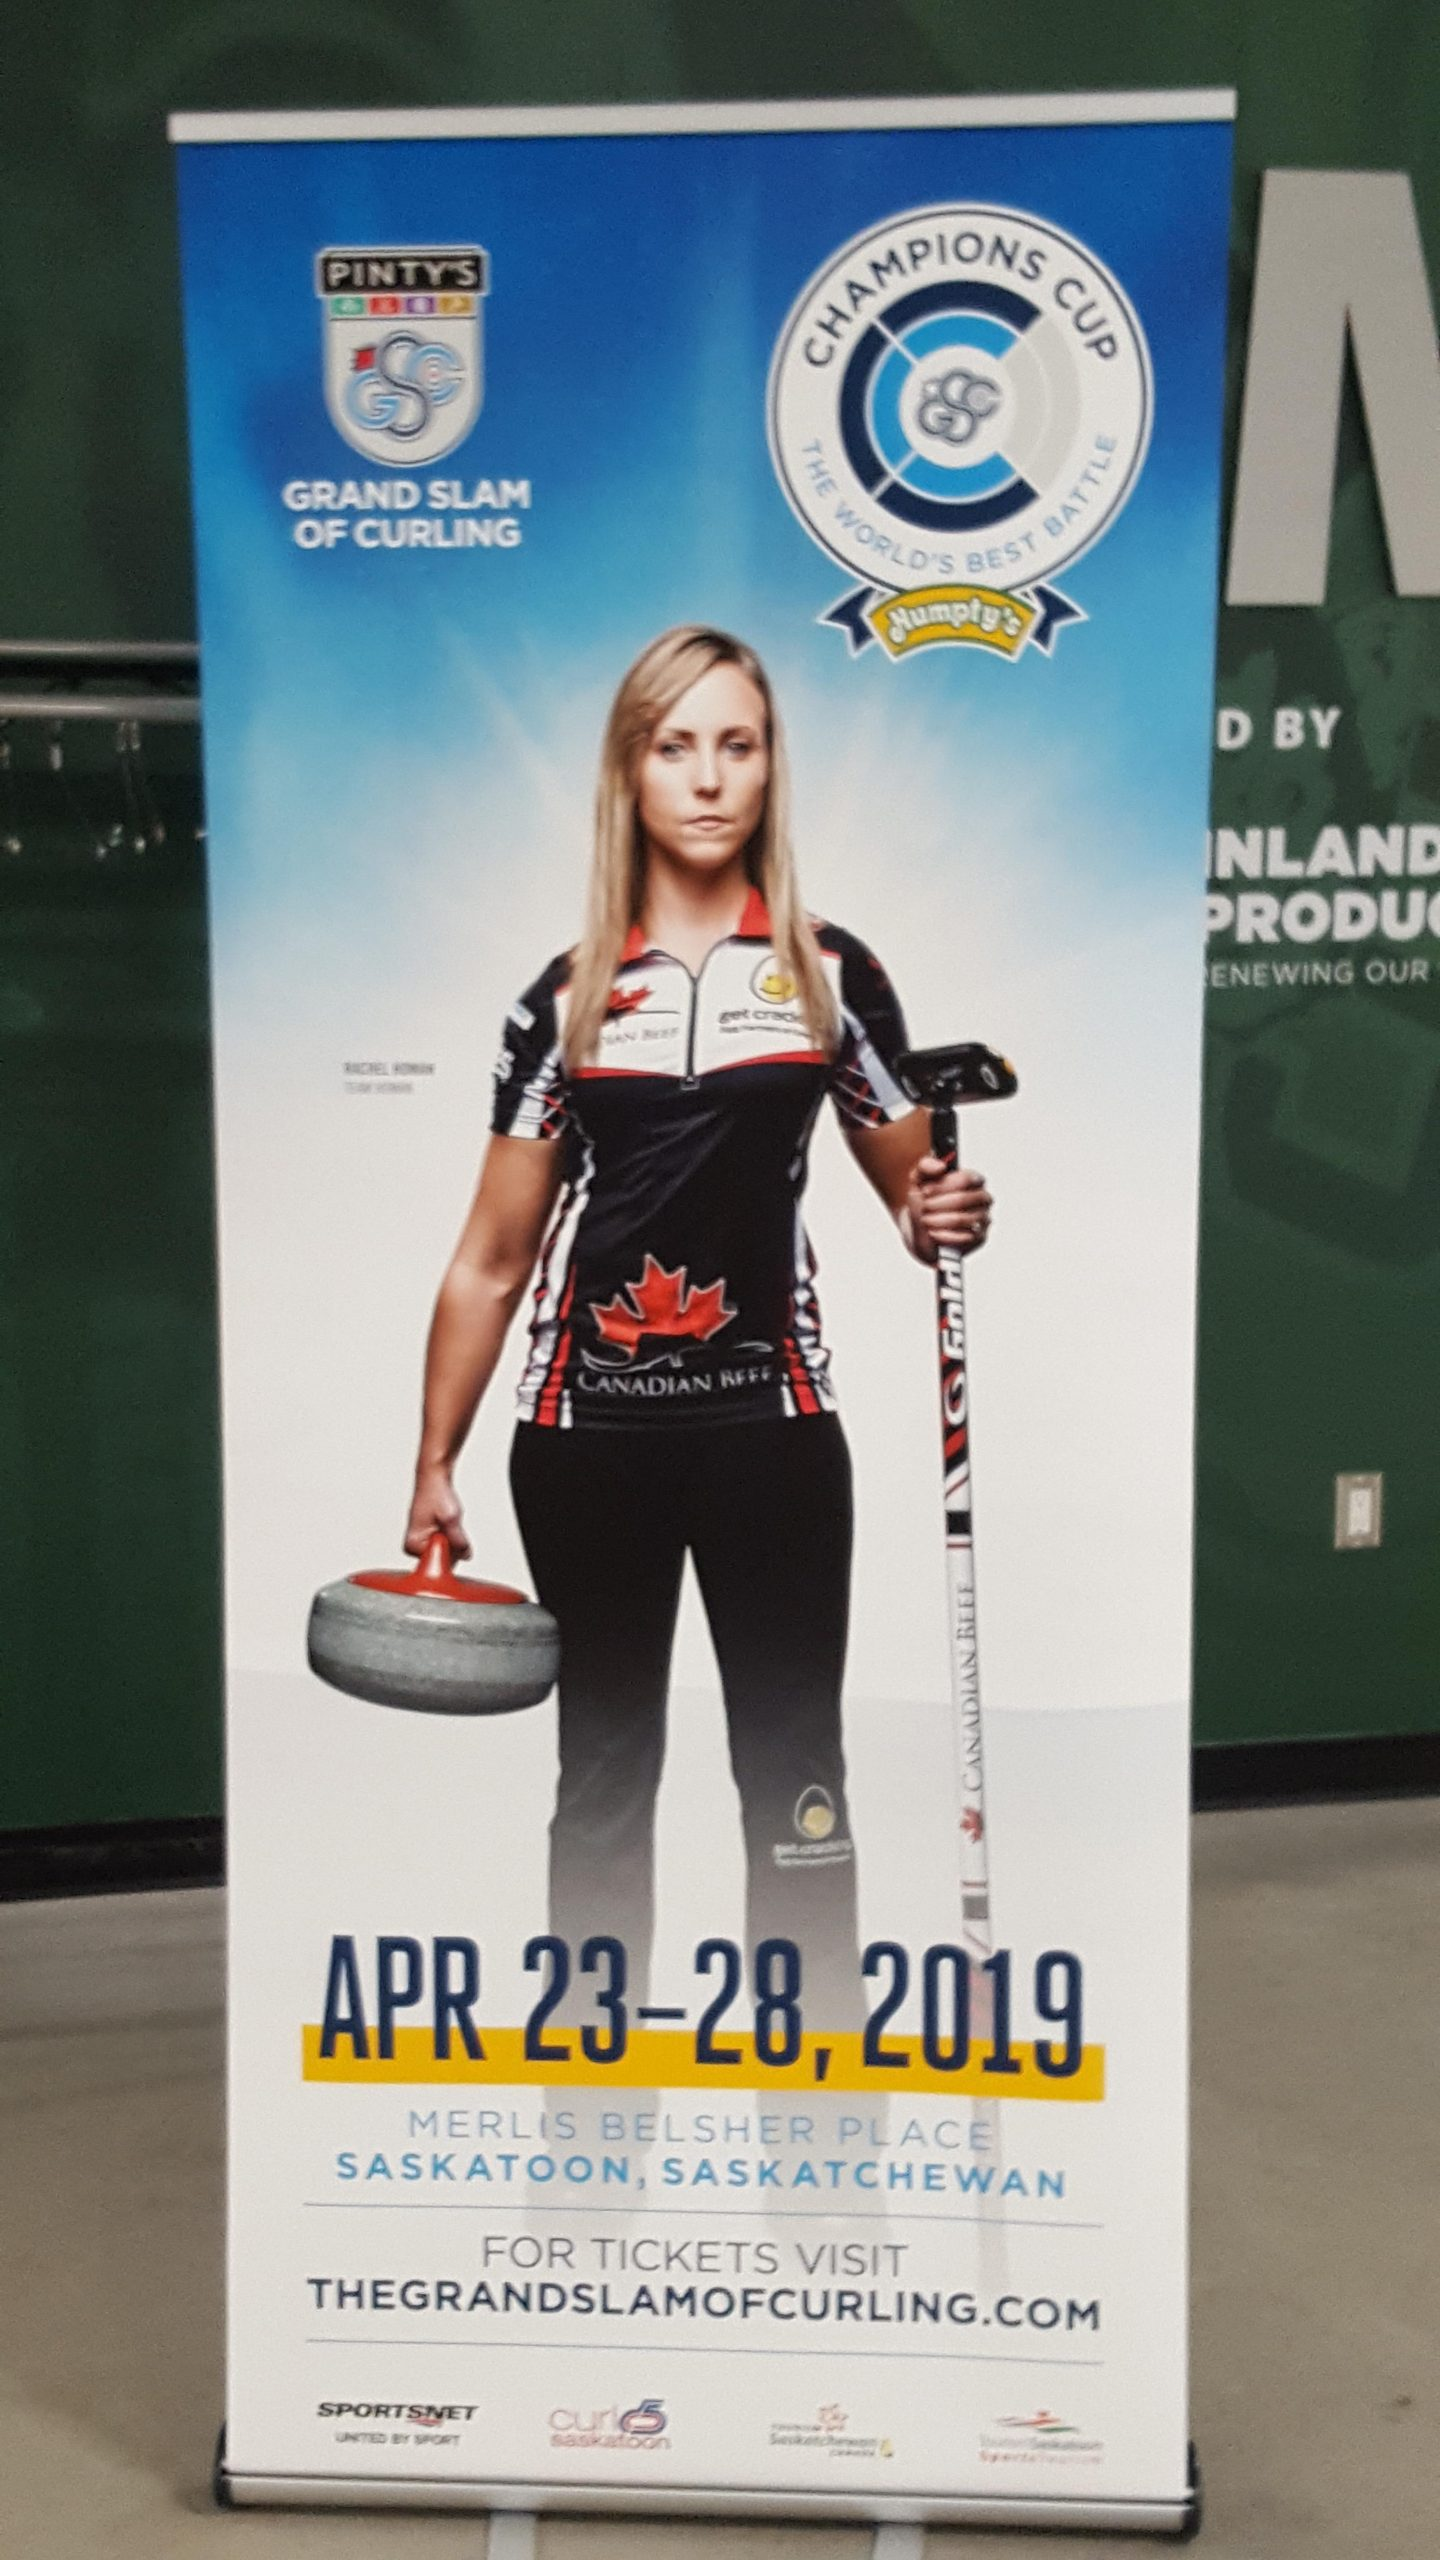 Event Tickets Now Available as Merlis Belsher Place to Host Grand Slam Curling